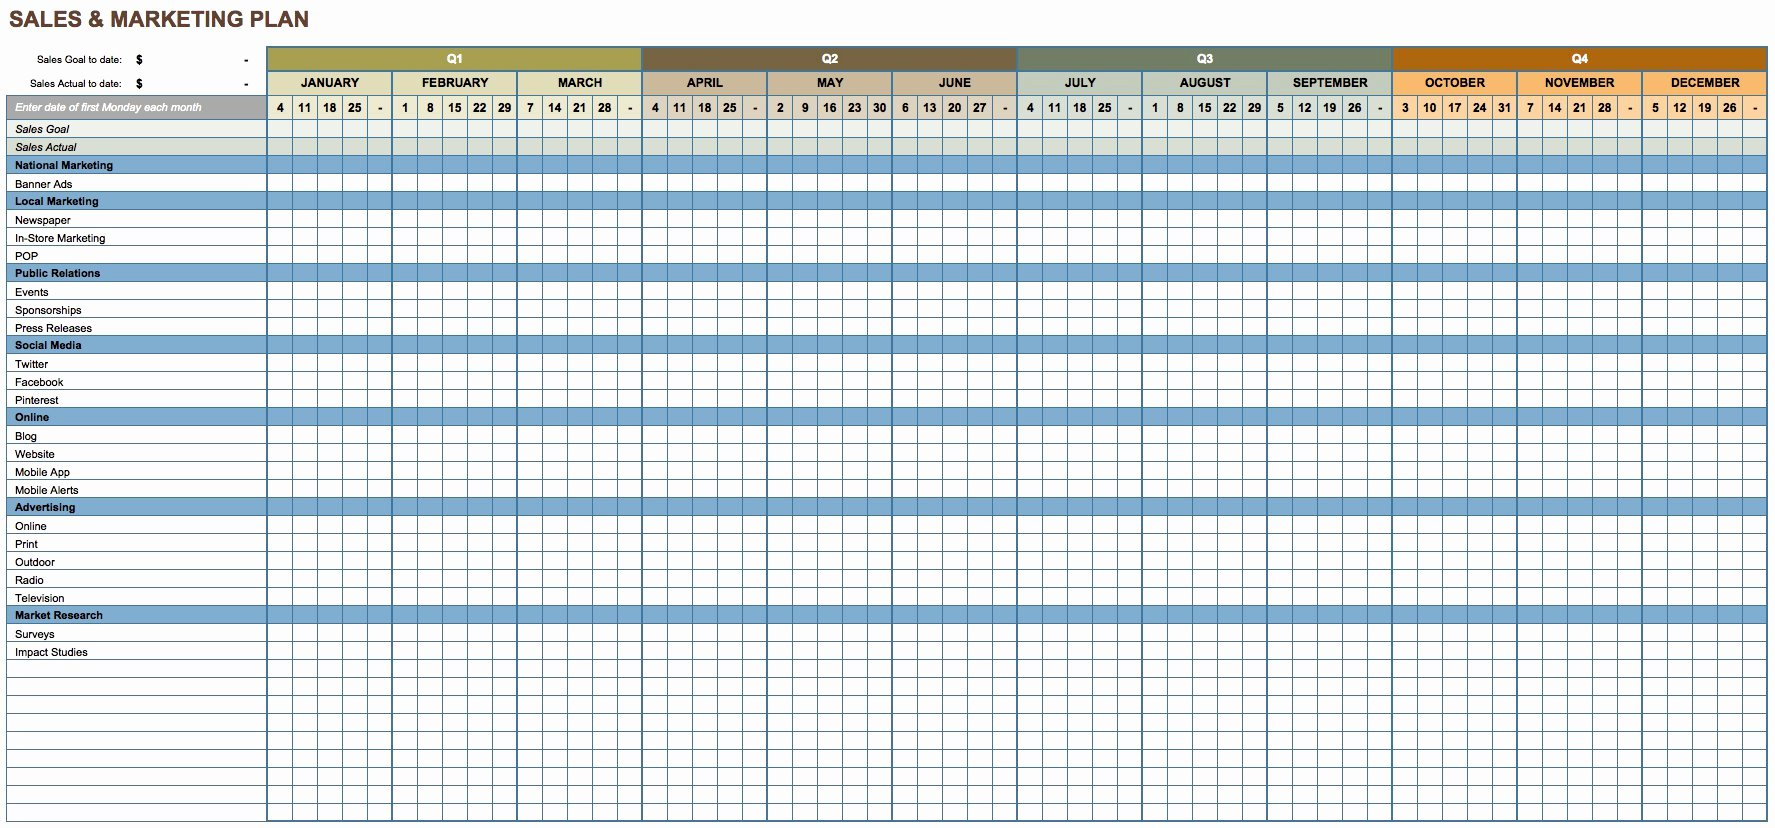 Sales and Marketing Plan Template Luxury Free Marketing Plan Templates for Excel Smartsheet